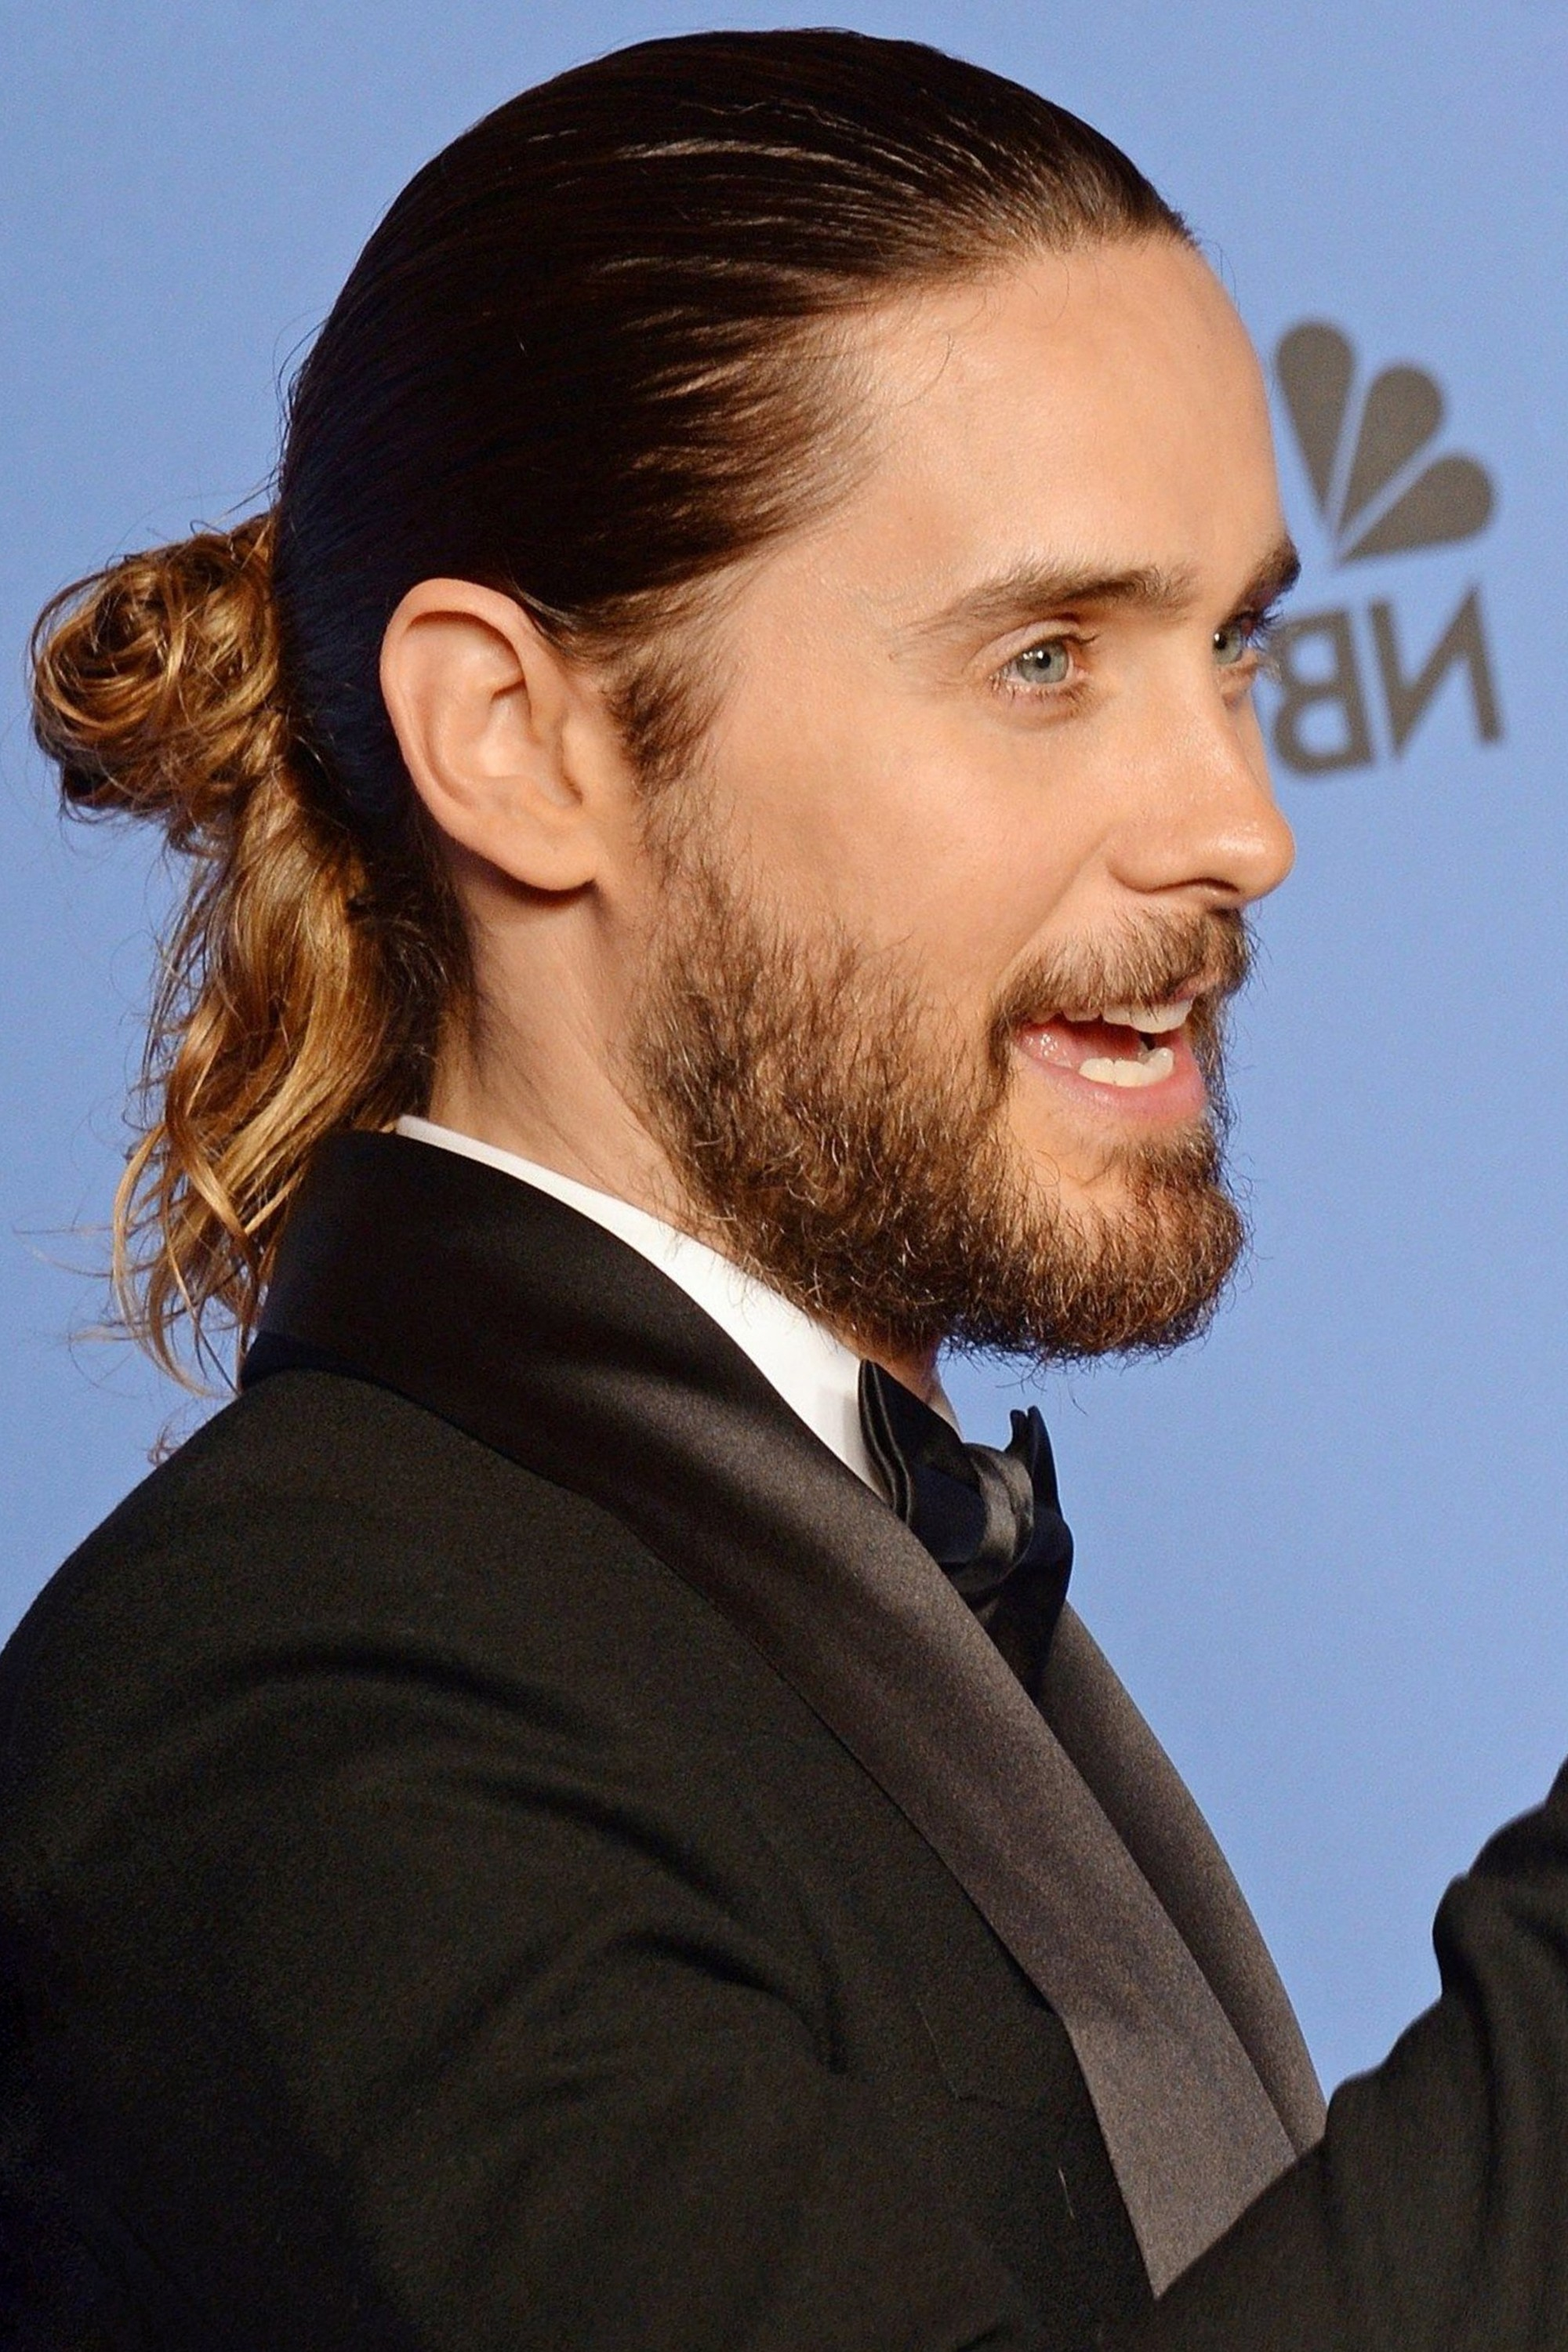 Jared Leto super stylish look with a bun.